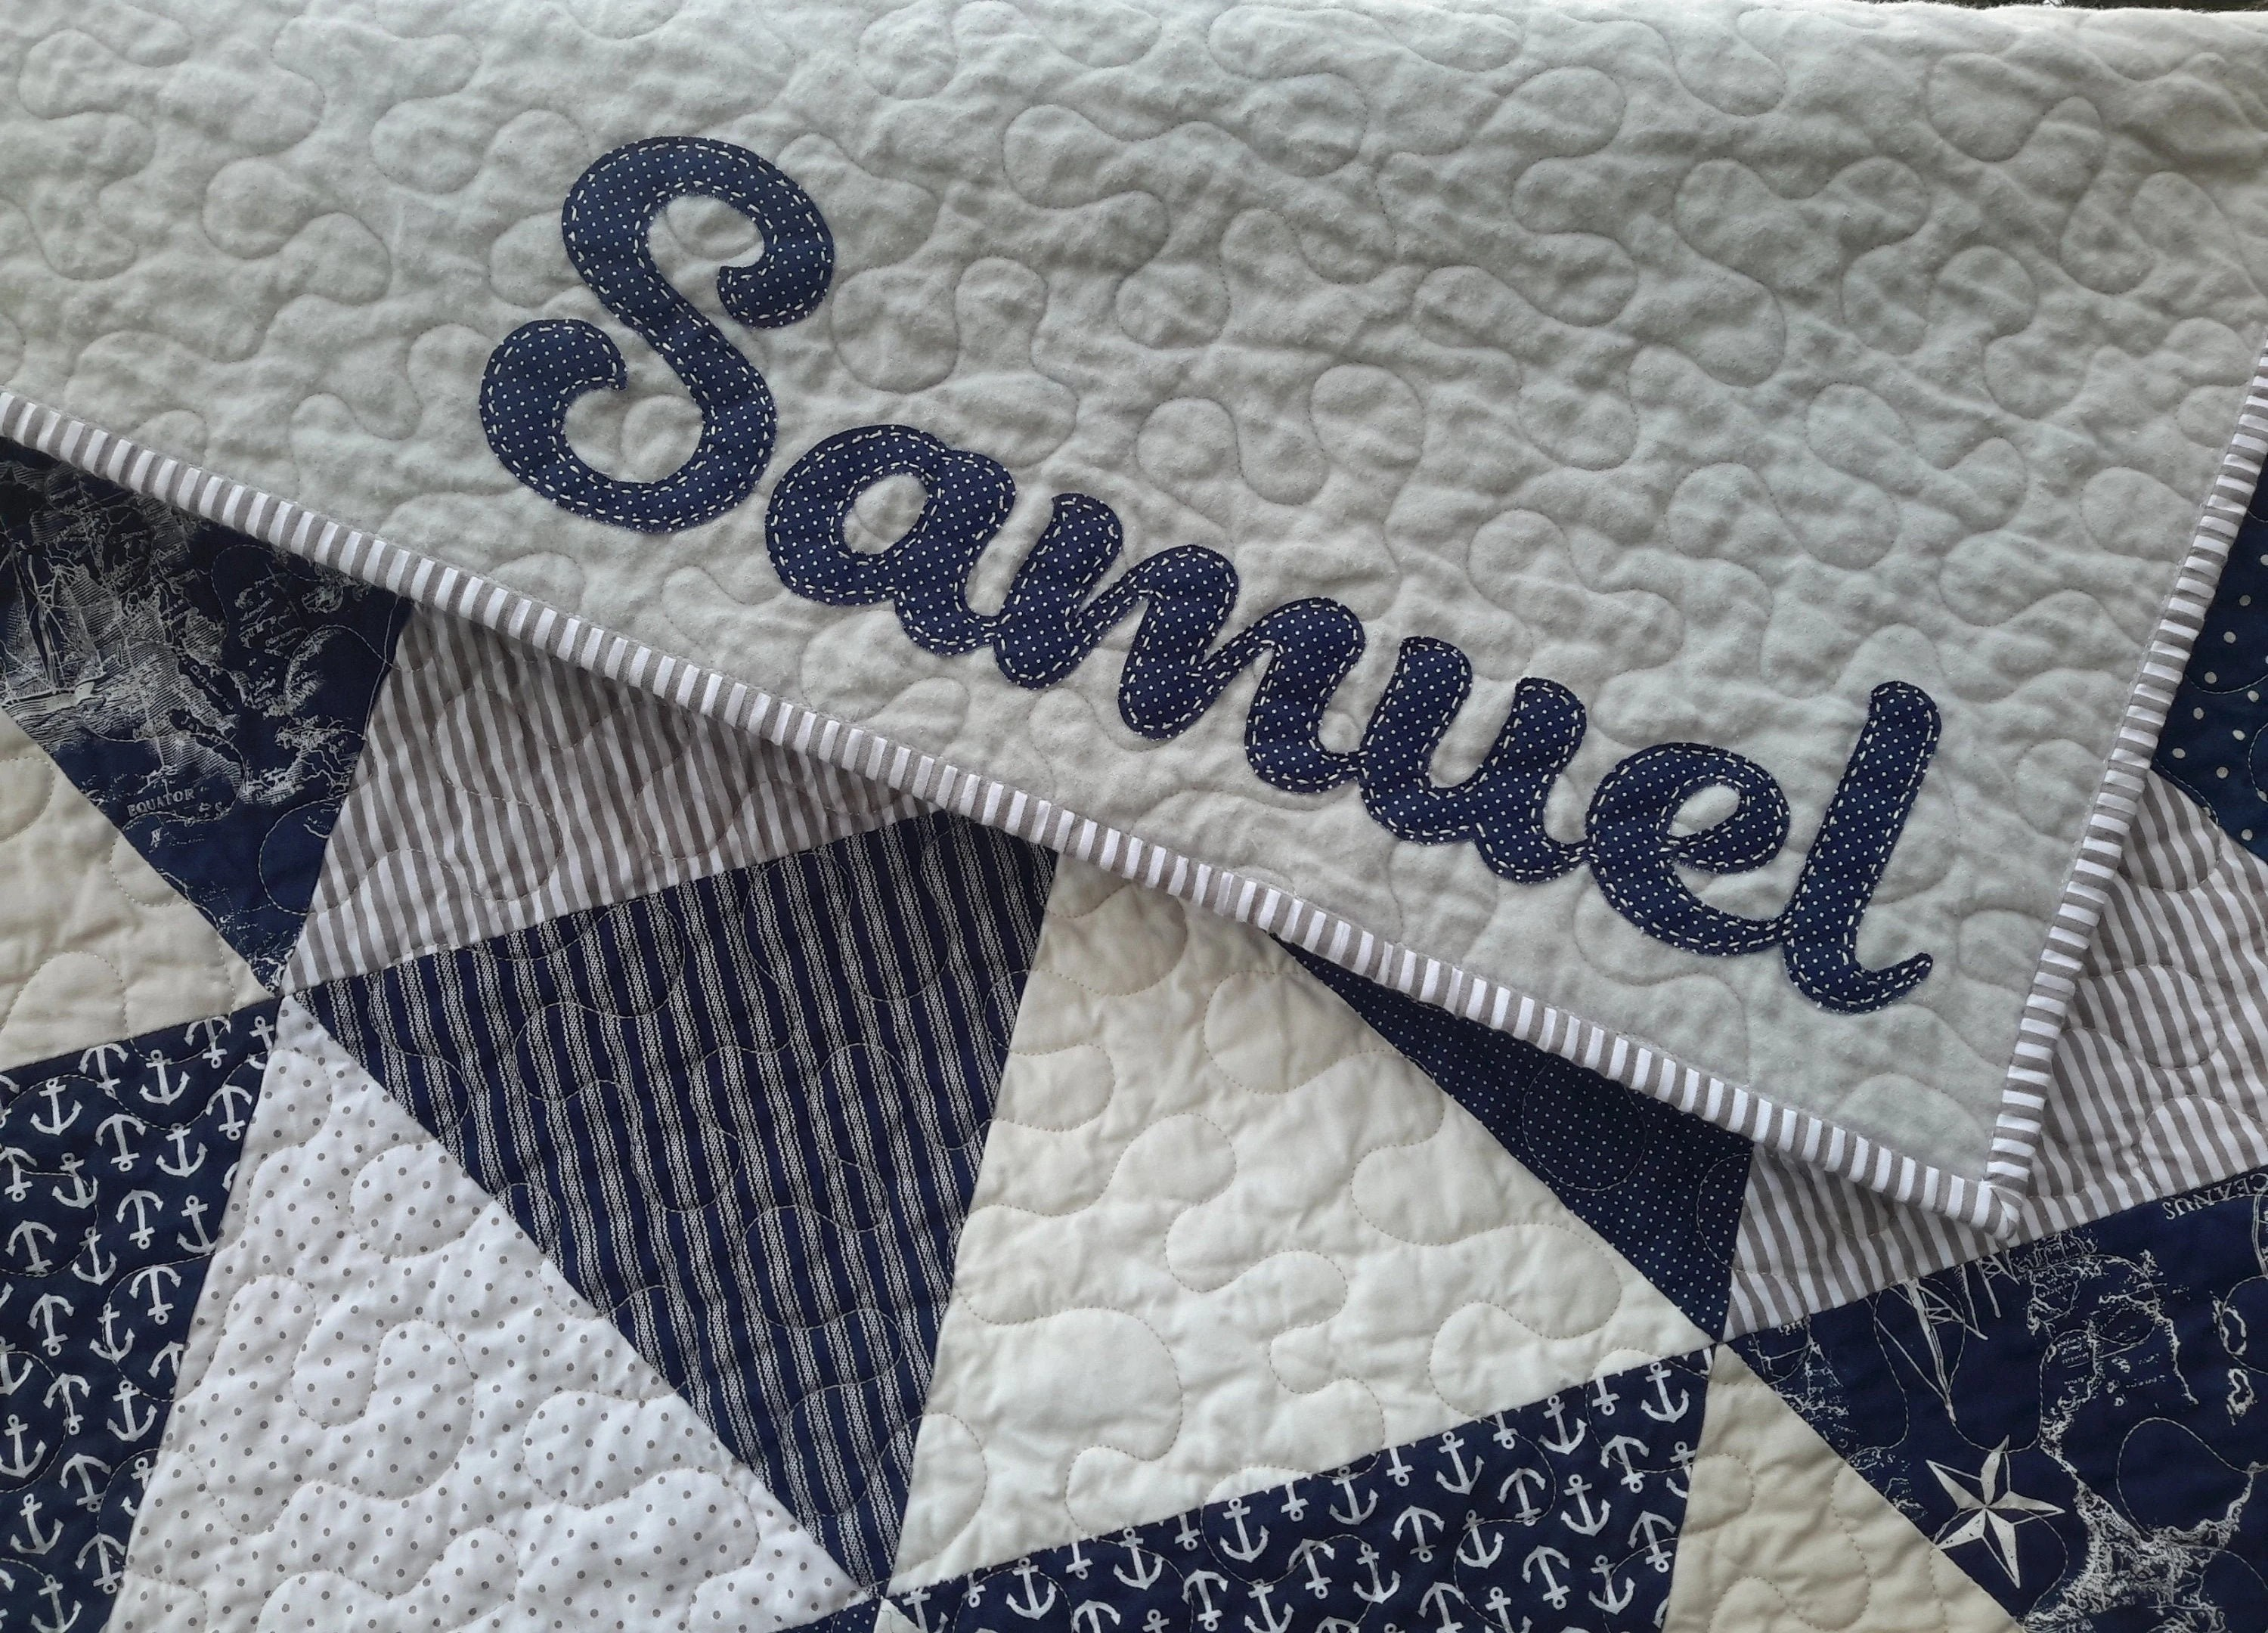 Quilt Personalization Add On  Add a Custom Name to the image 5